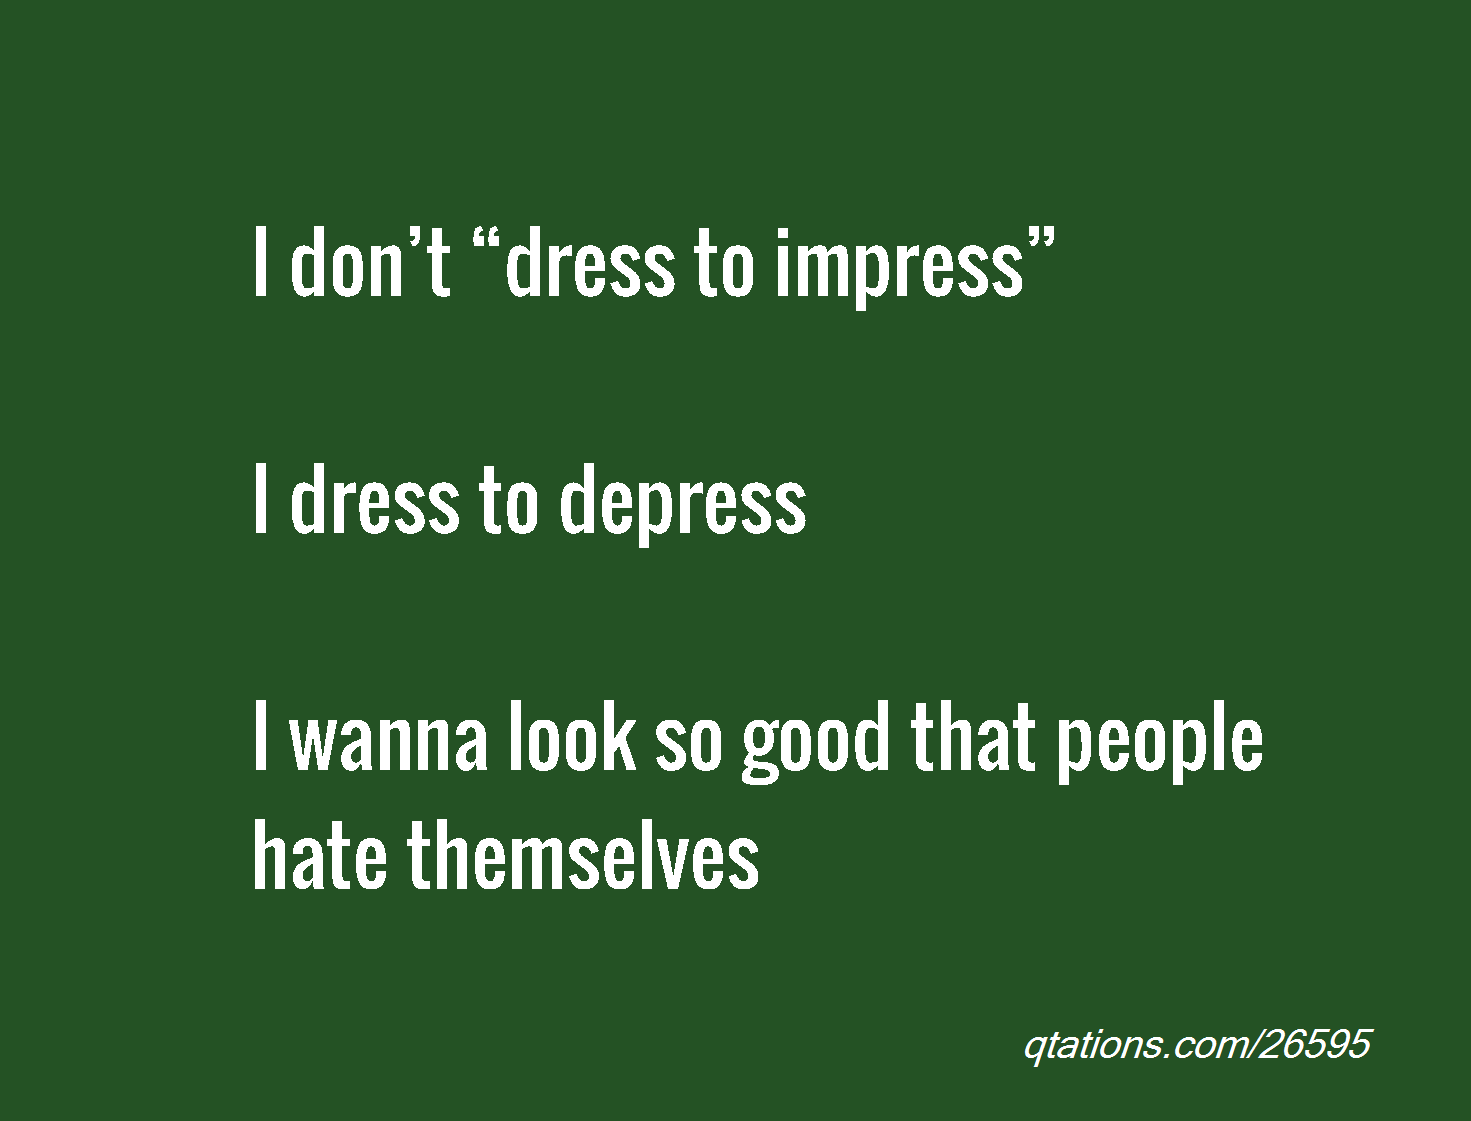 Dress For Success Quotes 62 Top Impress Quotes And Sayings